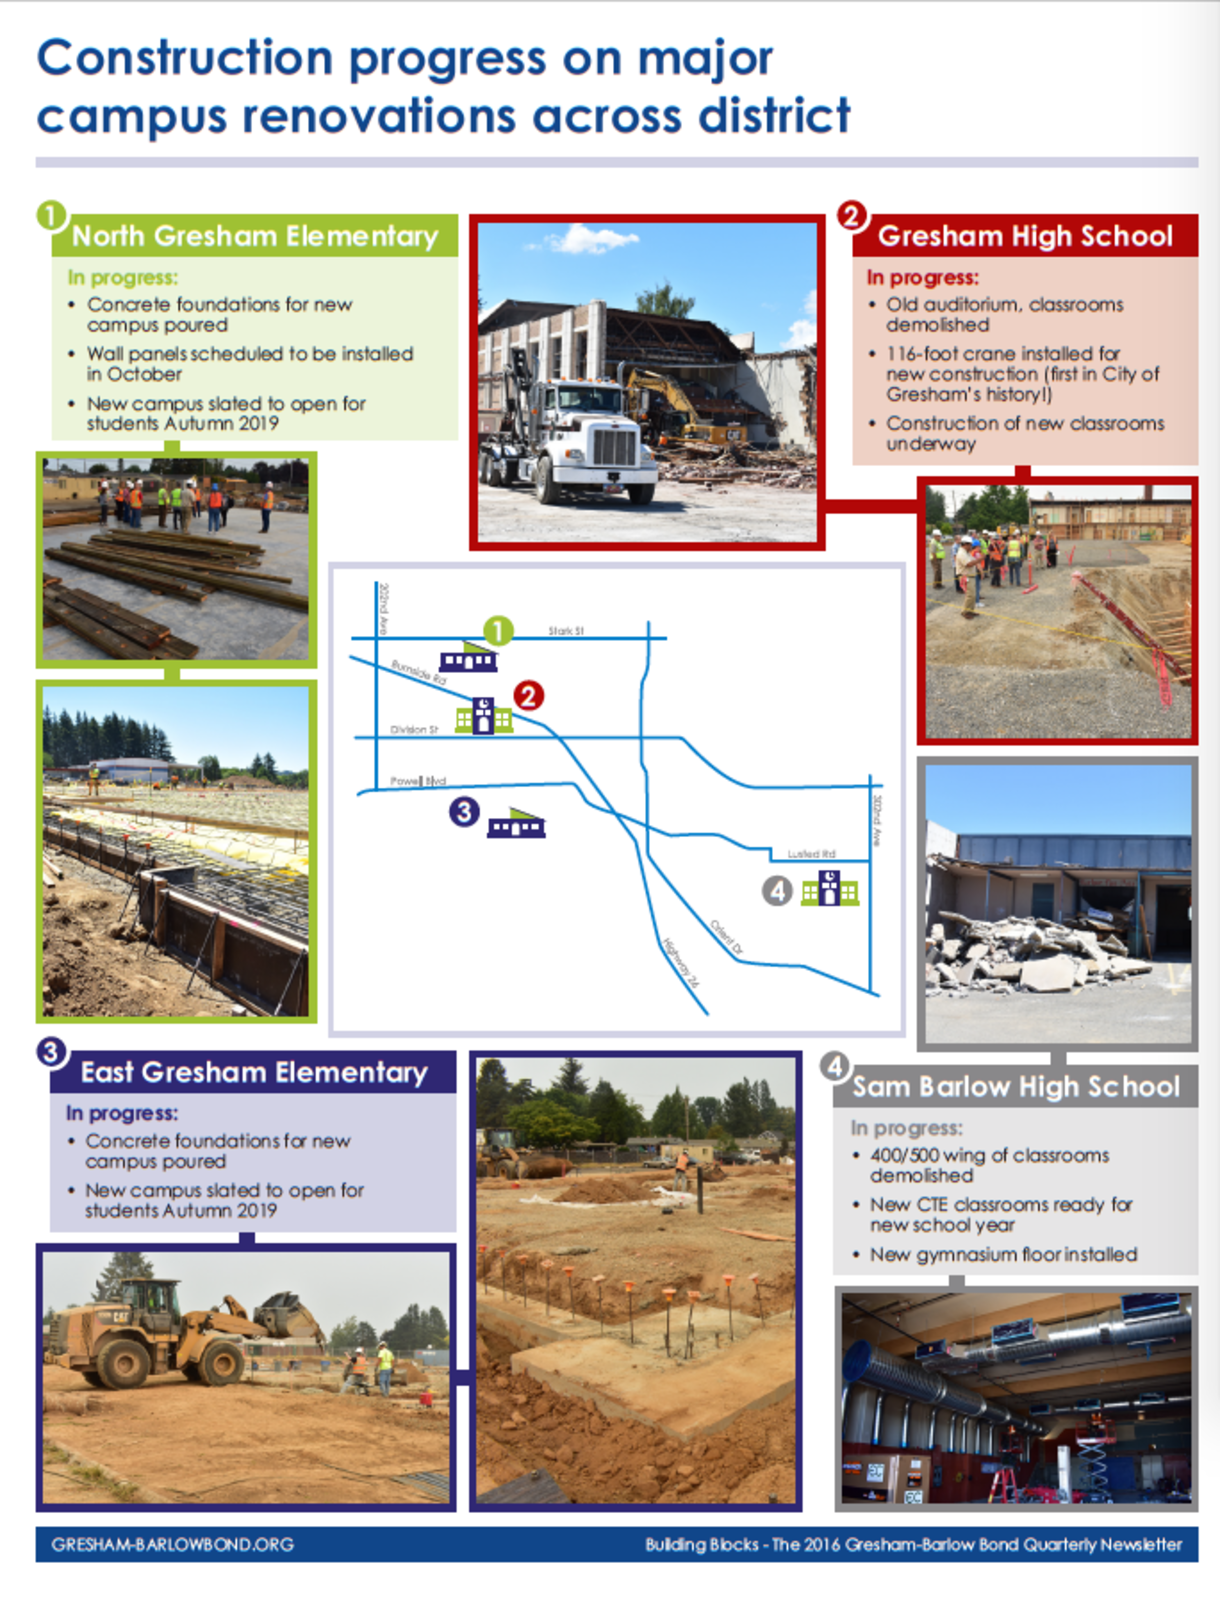 Image shows map of schools across district, with photos of construction projects underway.